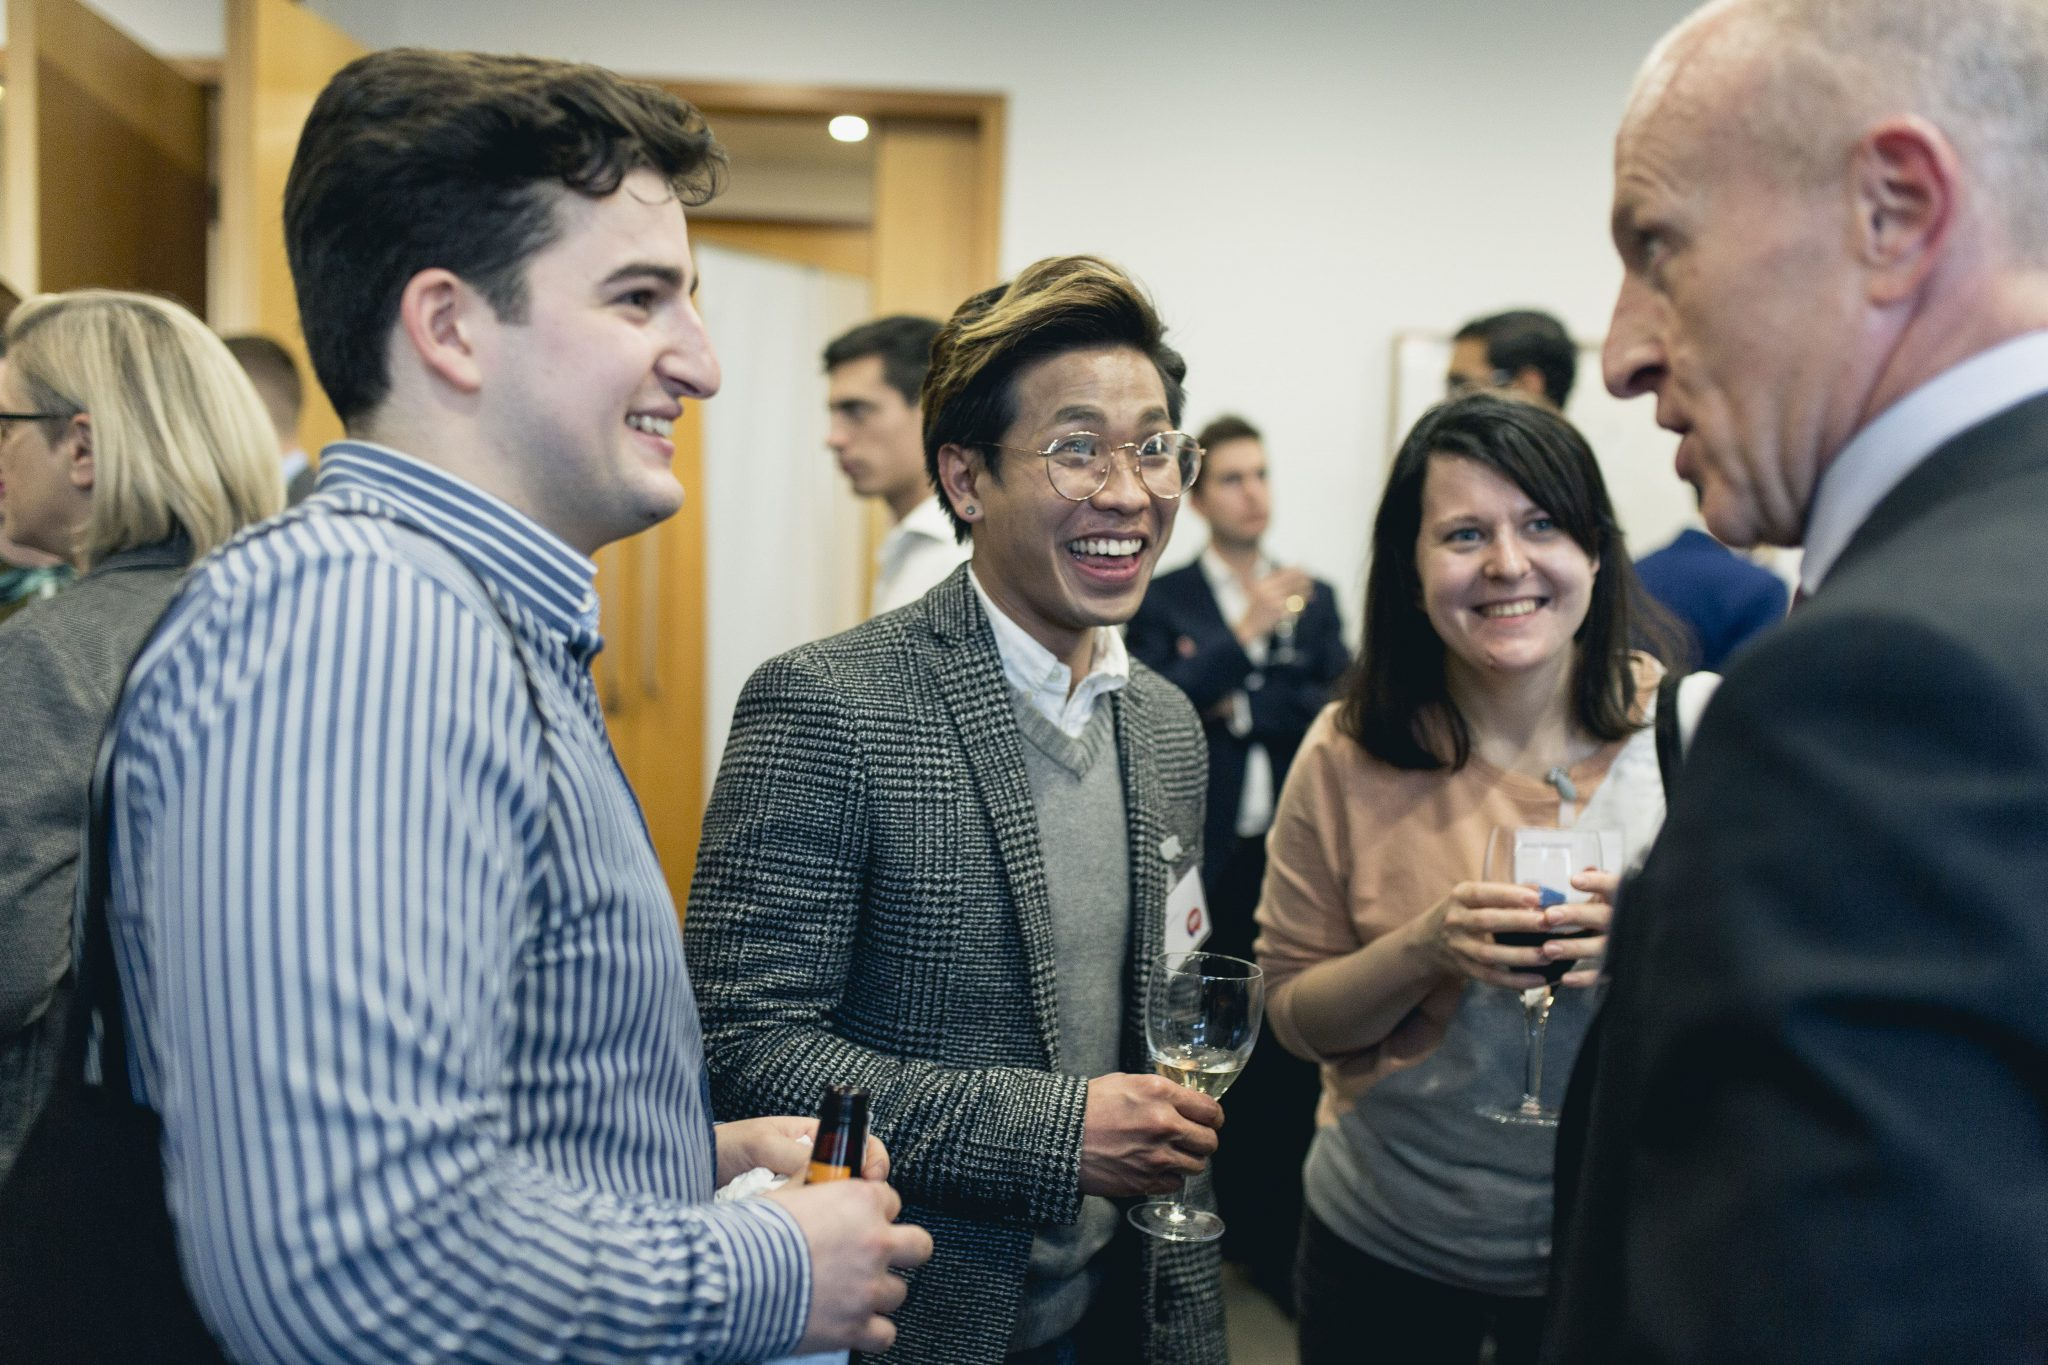 Students smiling and networking with industry experts at an Inside & Out LGBTQ+ event, with drinks in their hands